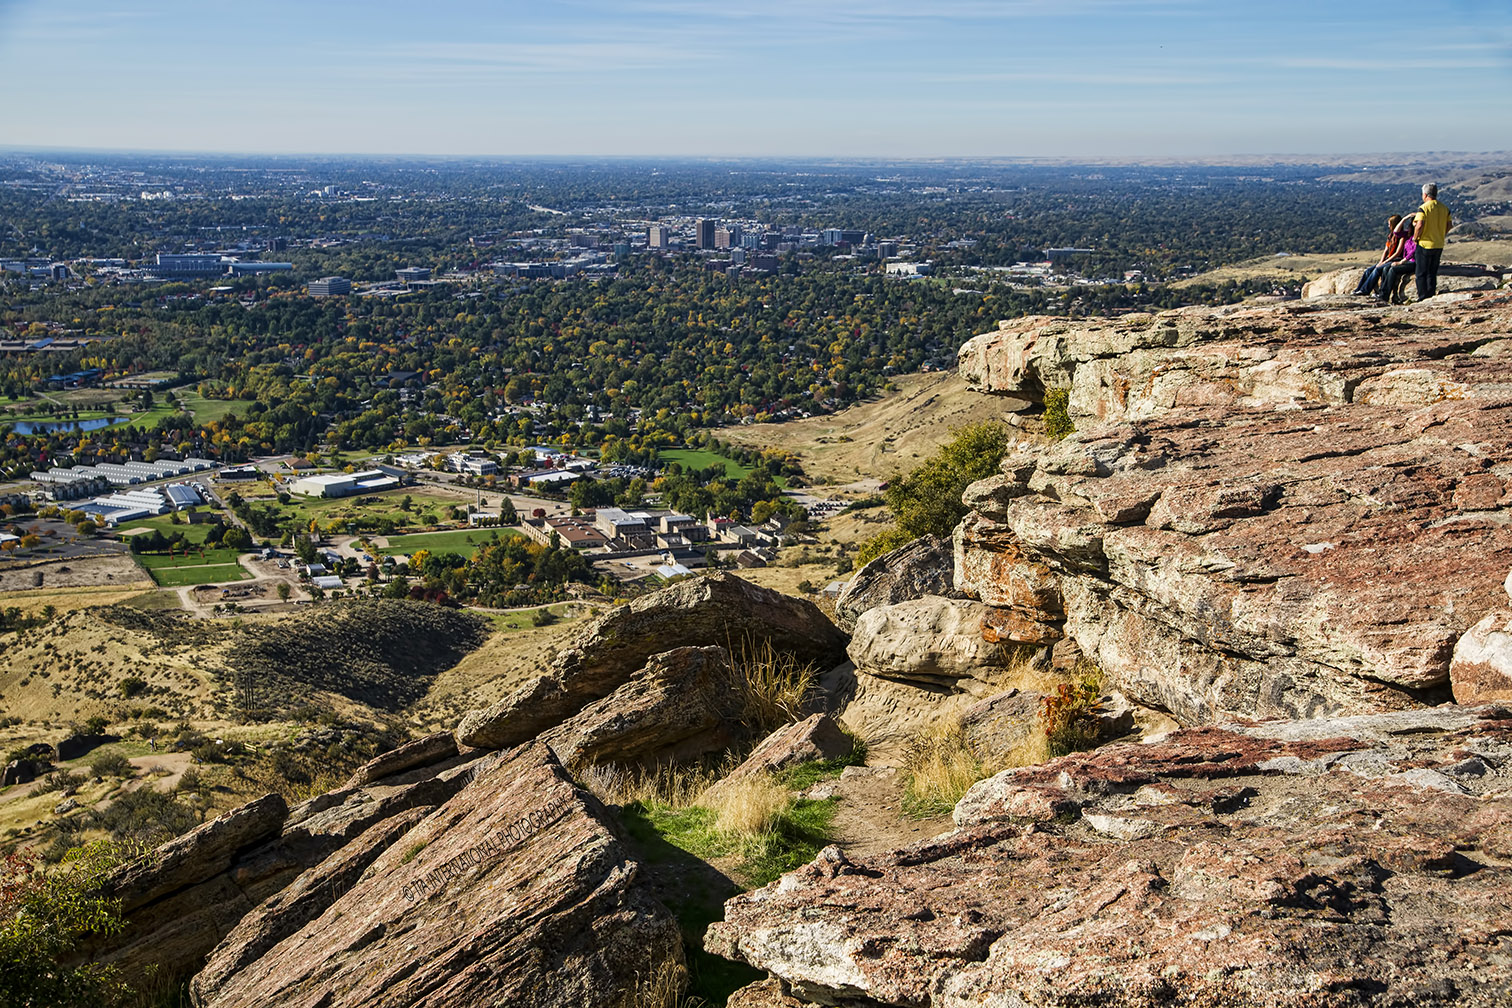 Vista of the City of Boise & Treasure Valley from Table Rock.